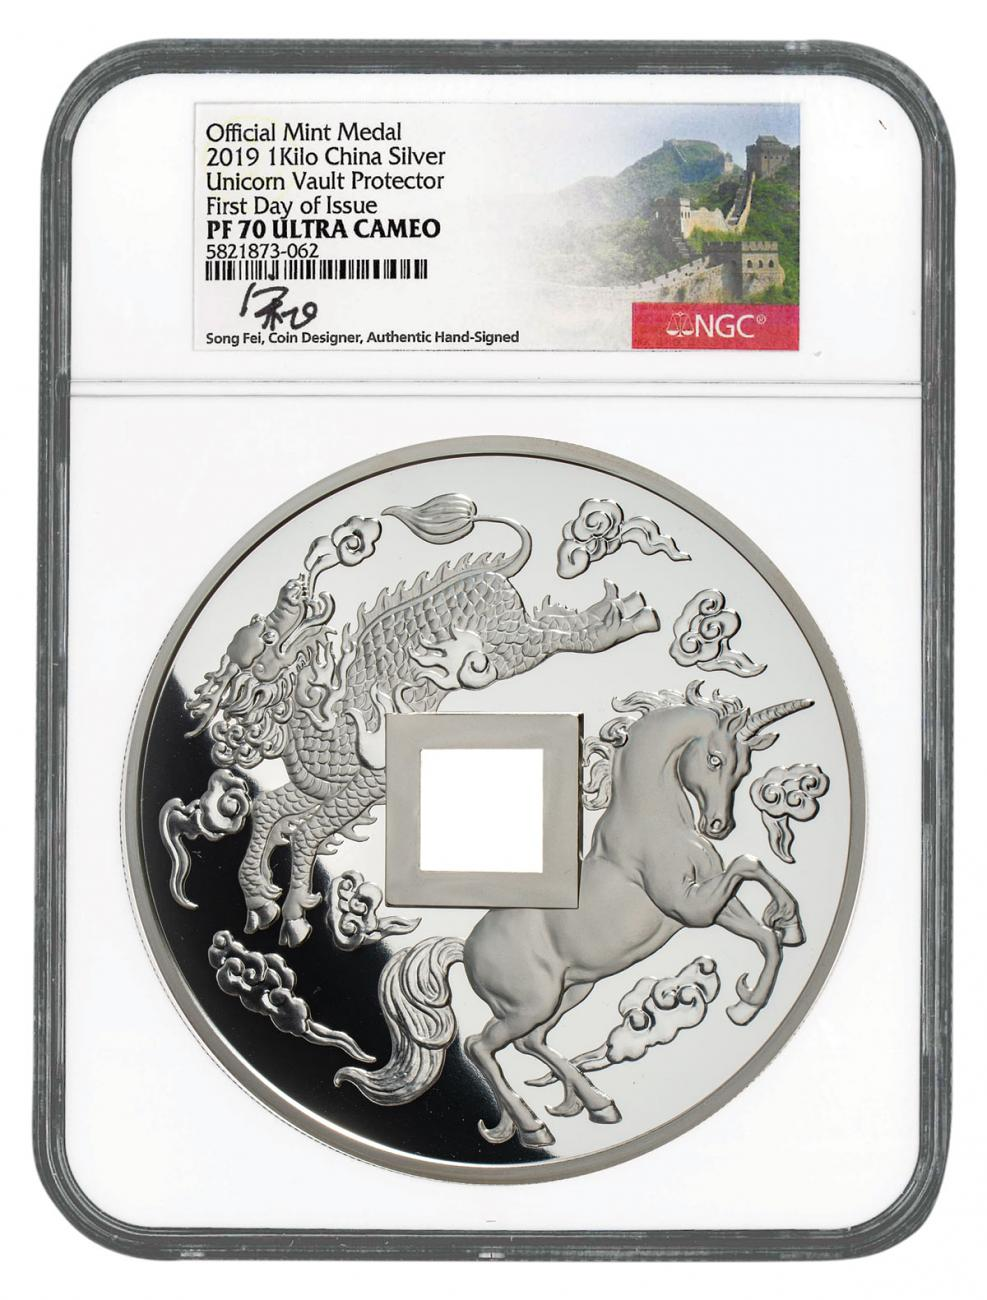 2019 China Unicorn Vault Protector 25th Anniversary 1 kg Silver Proof Medal Scarce and Unique Coin Division NGC PF70 UC FDI Song Fei Signed Label